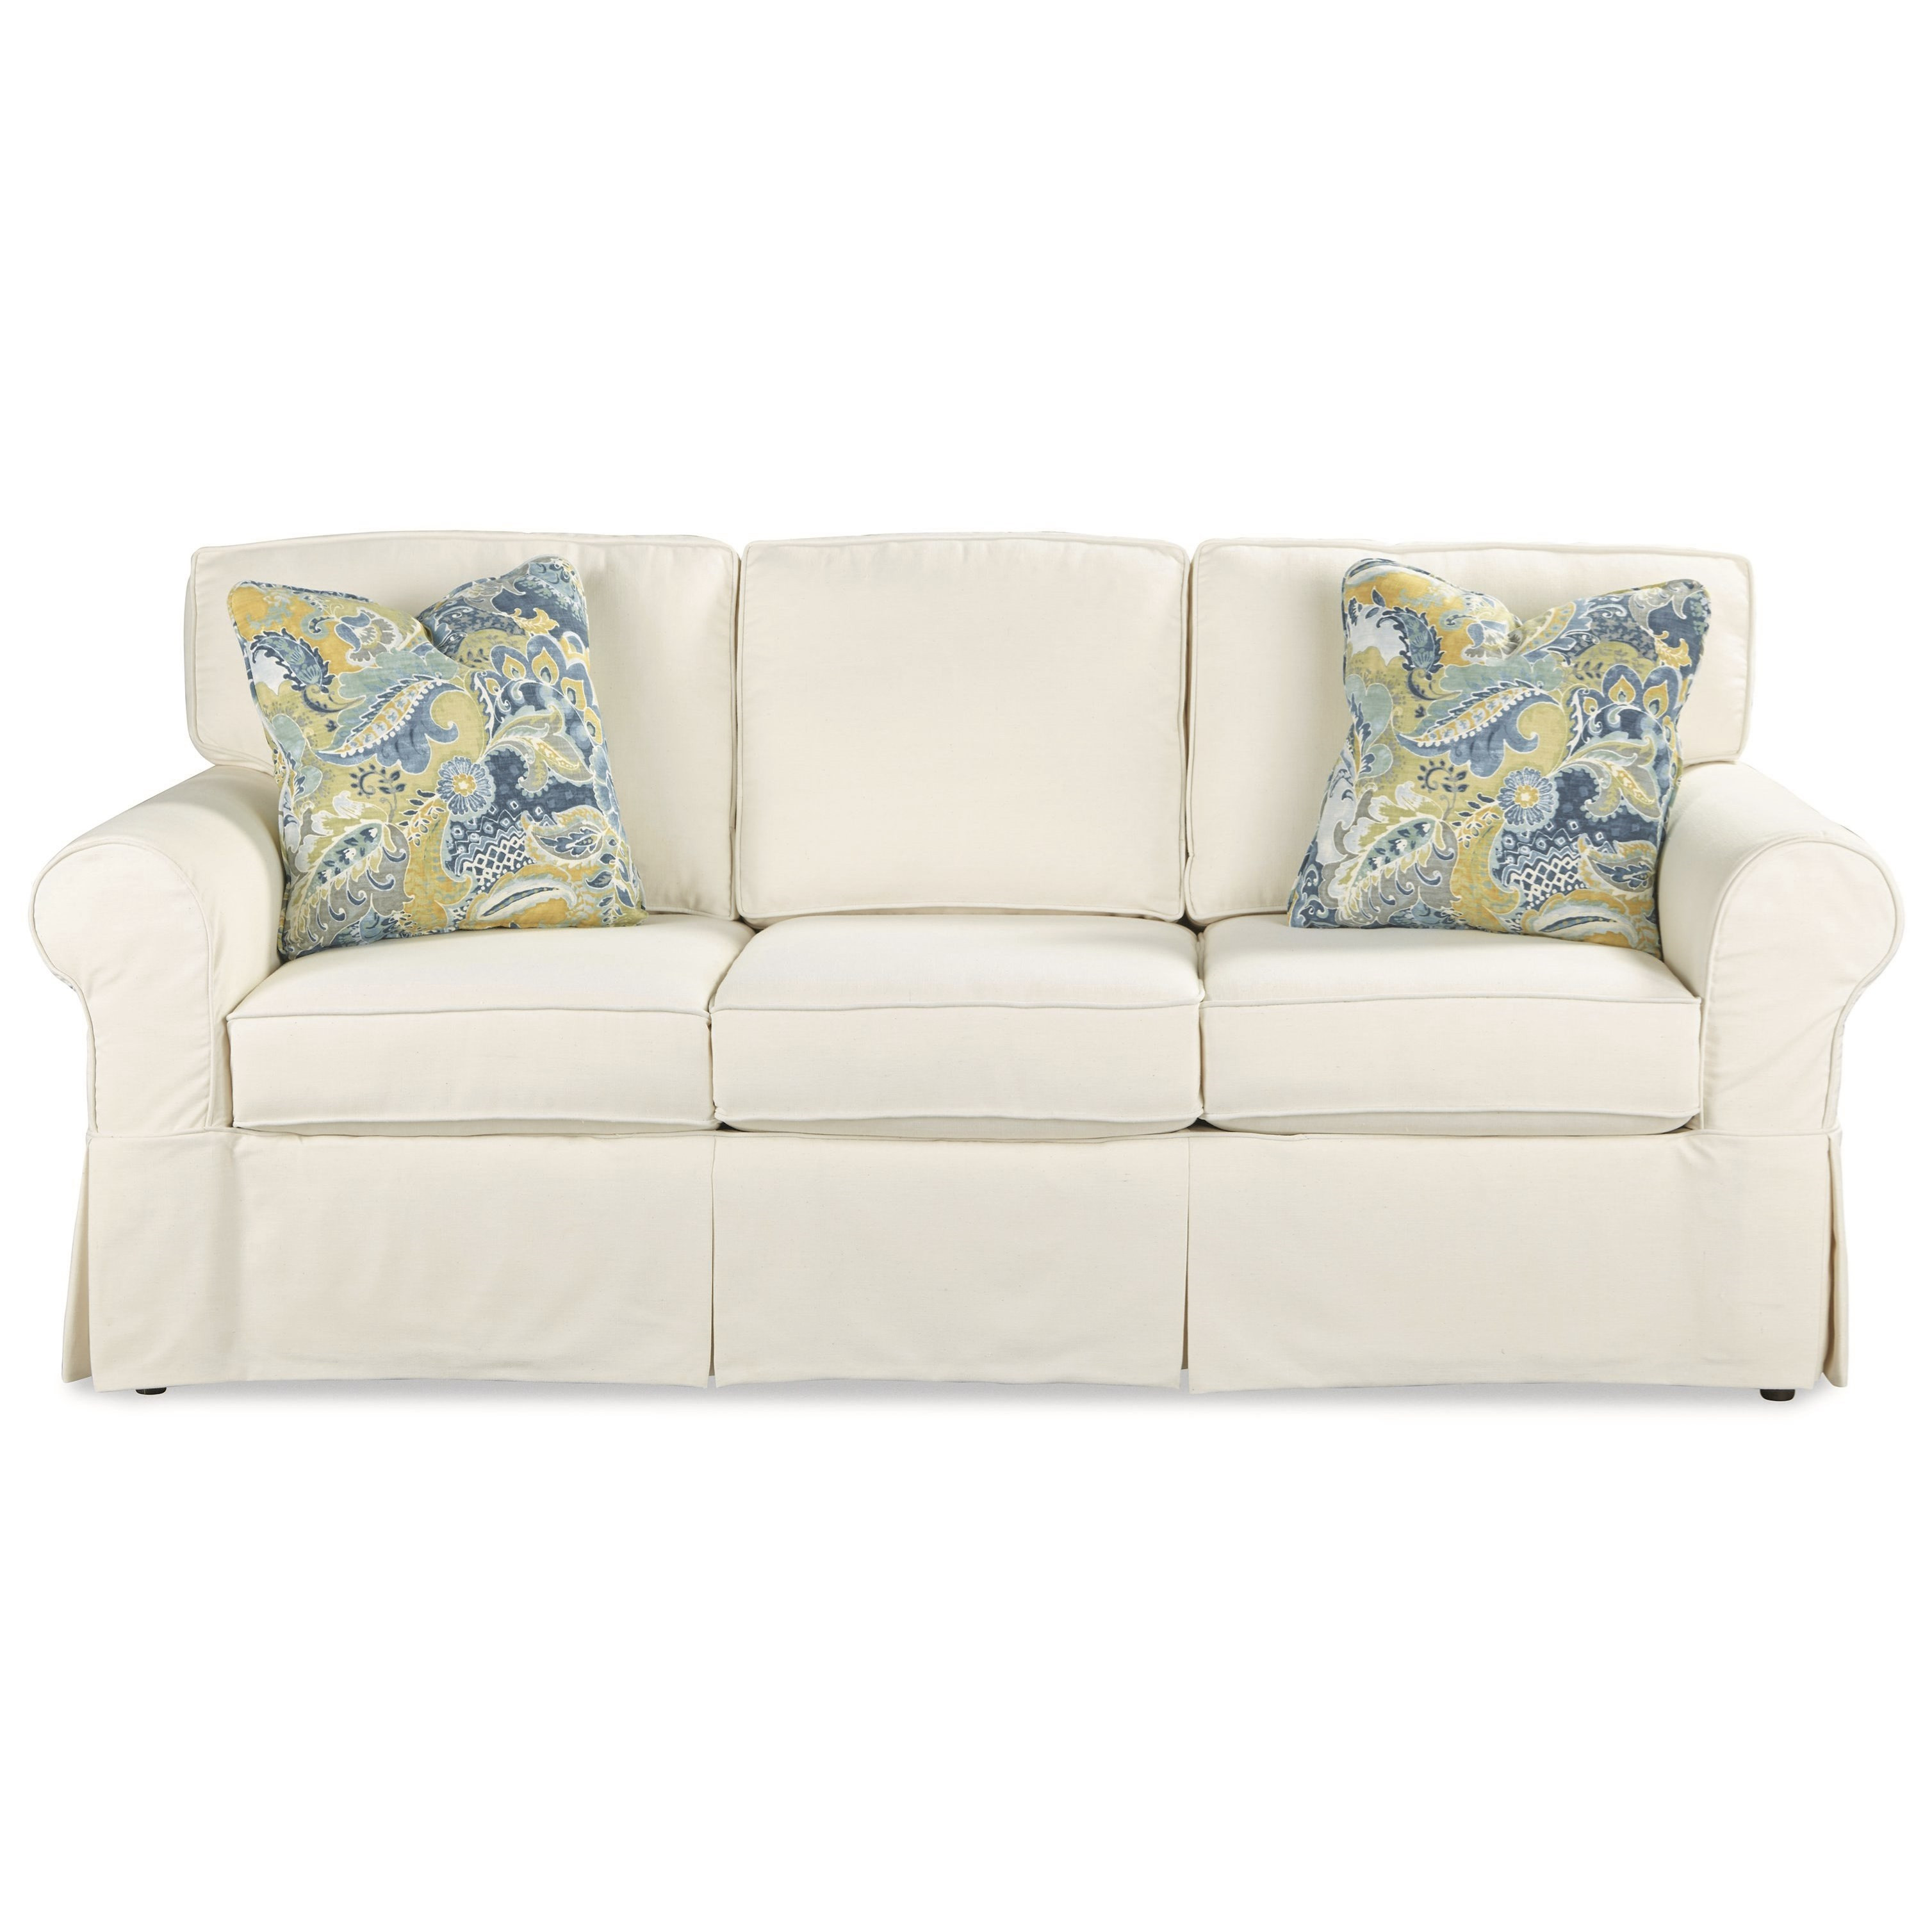 Best ideas about Queen Sleeper Sofa Mattress . Save or Pin Casual Slipcover Sleeper Sofa with Queen Innerspring Now.